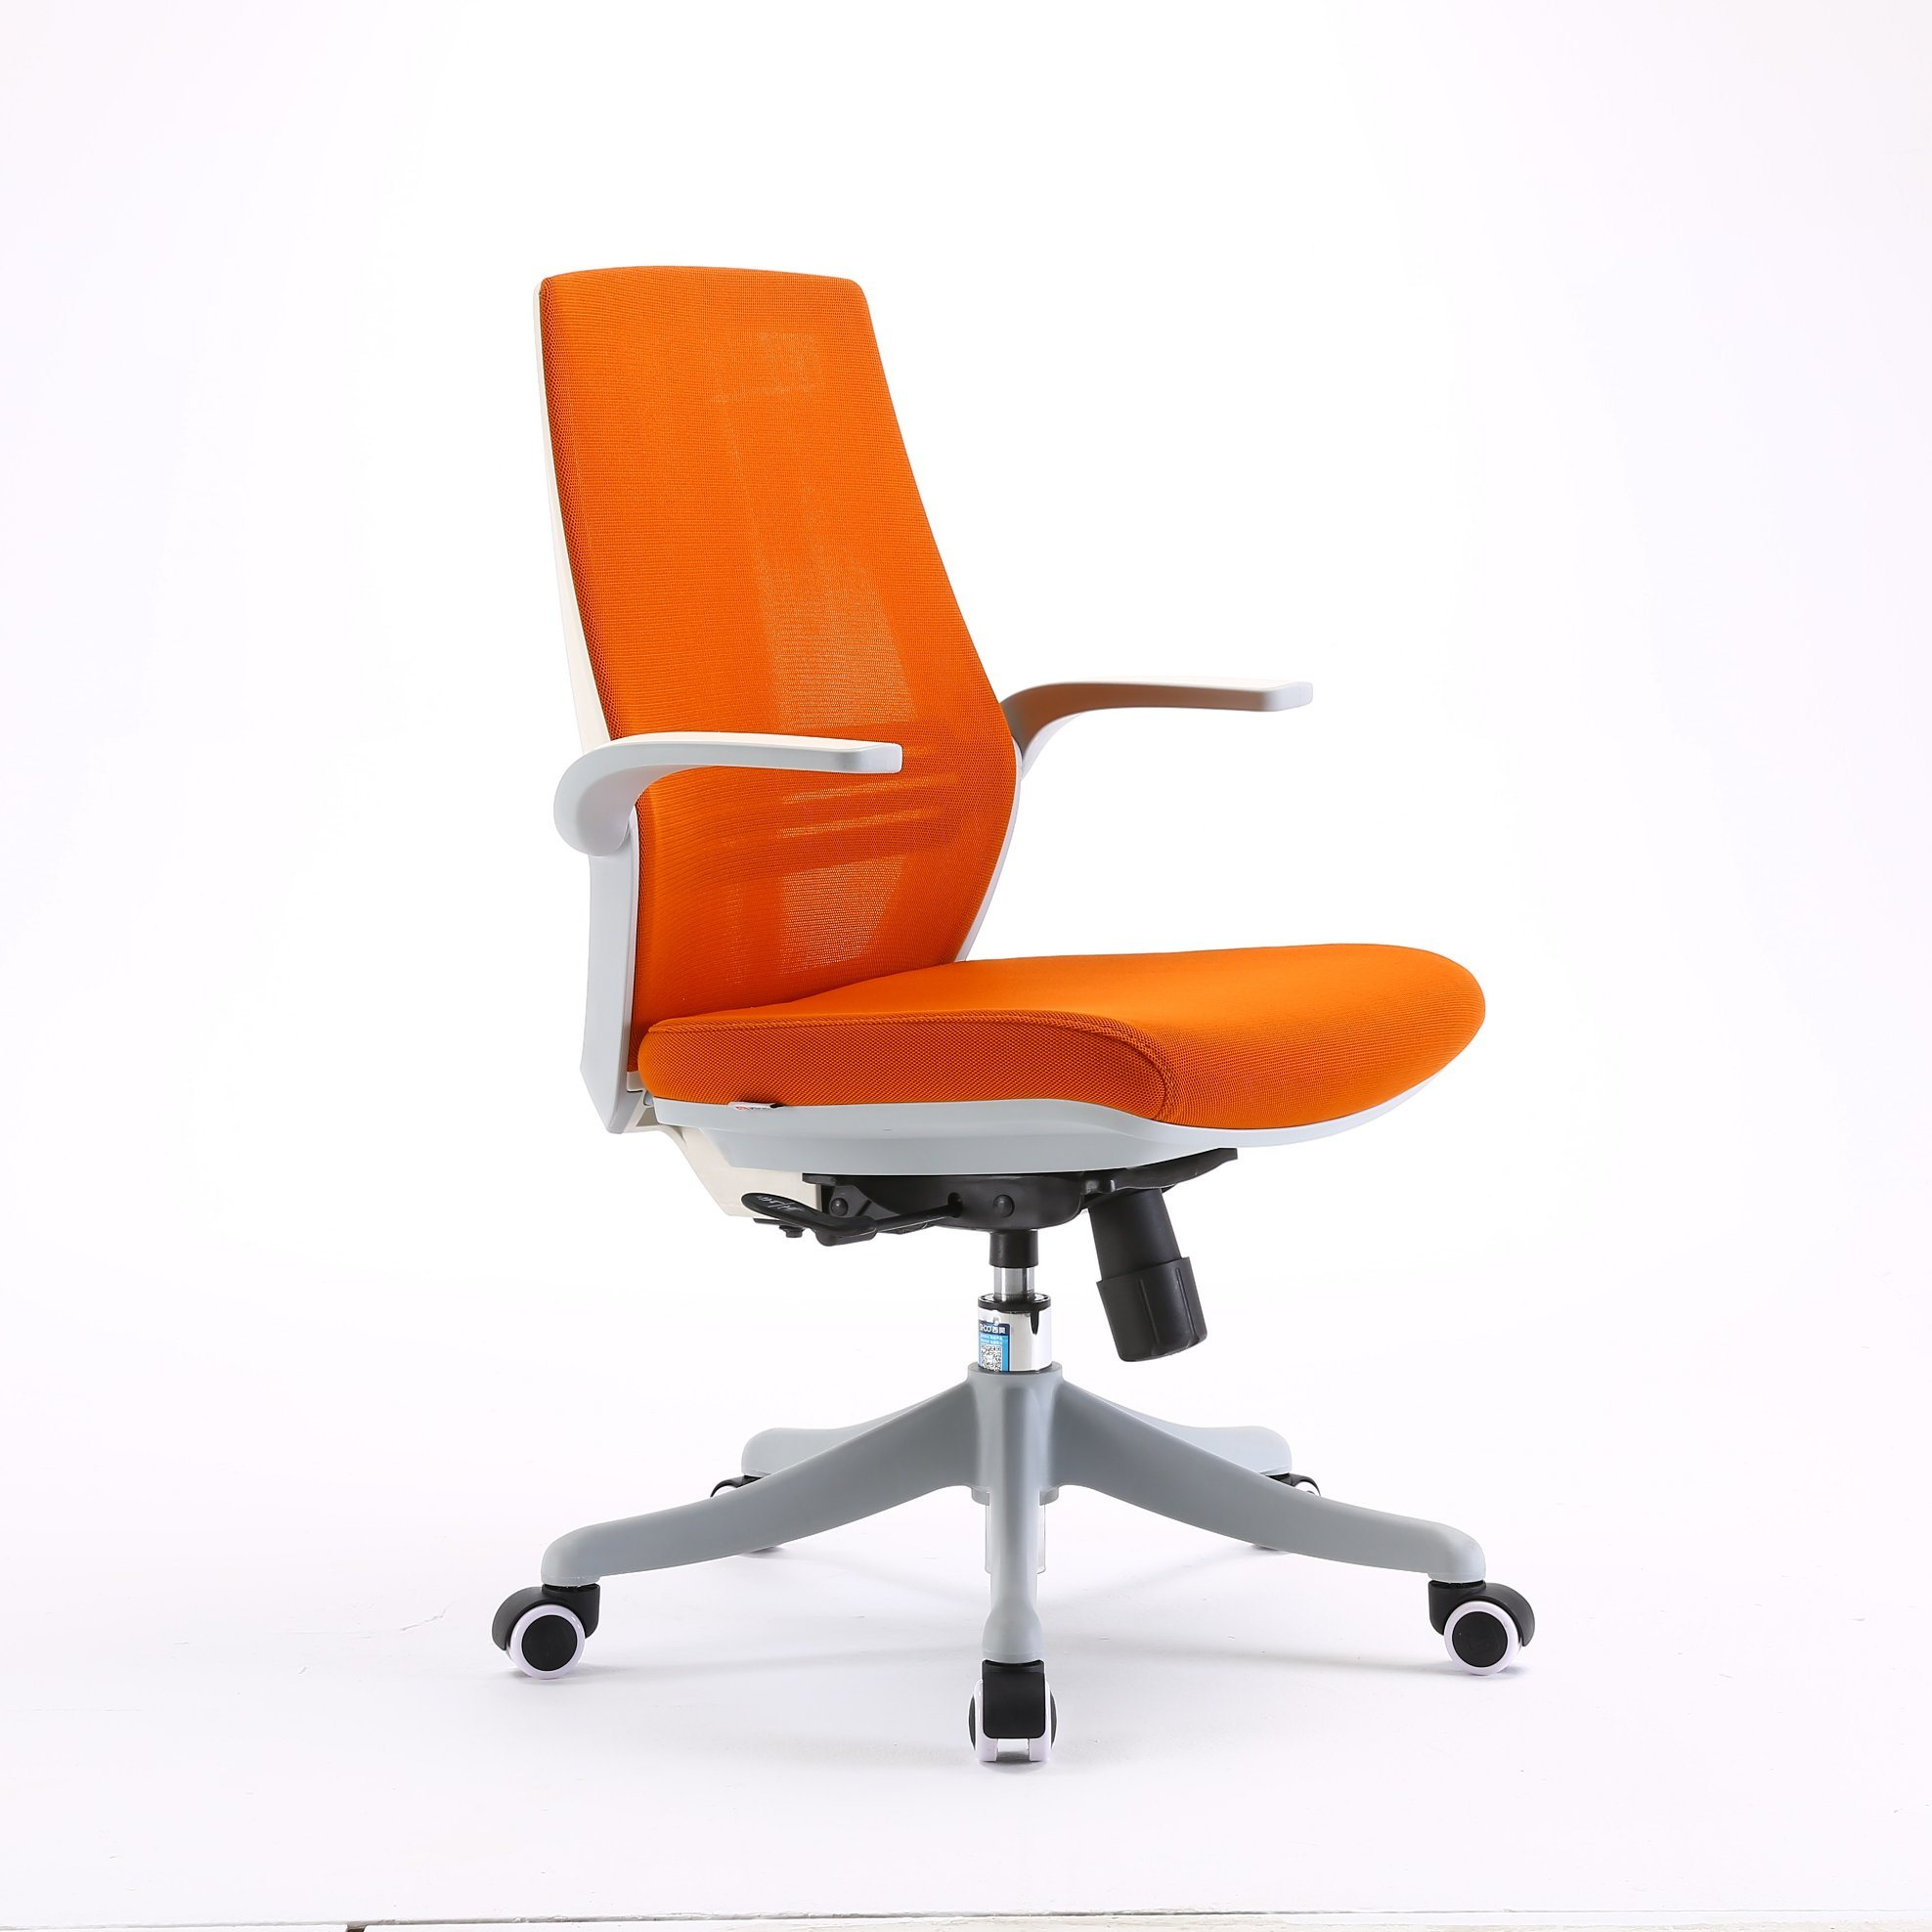 China Modern Ergonomic Office Chair Ergonomic Mesh Chair With Sliding Seat China Office Chairs Chair Office Furniture